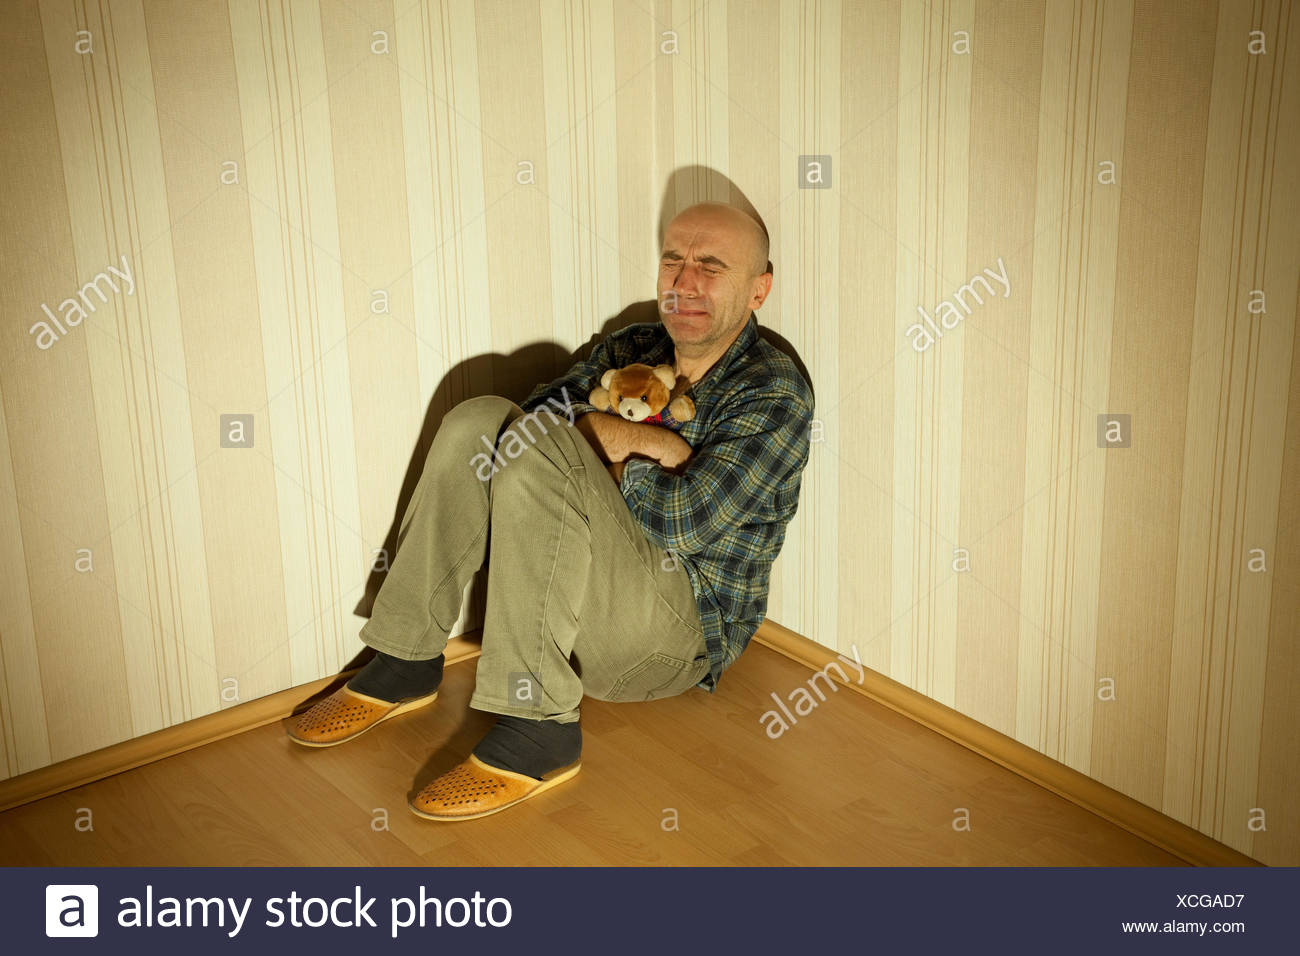 room depression thoughtful Stock Photo